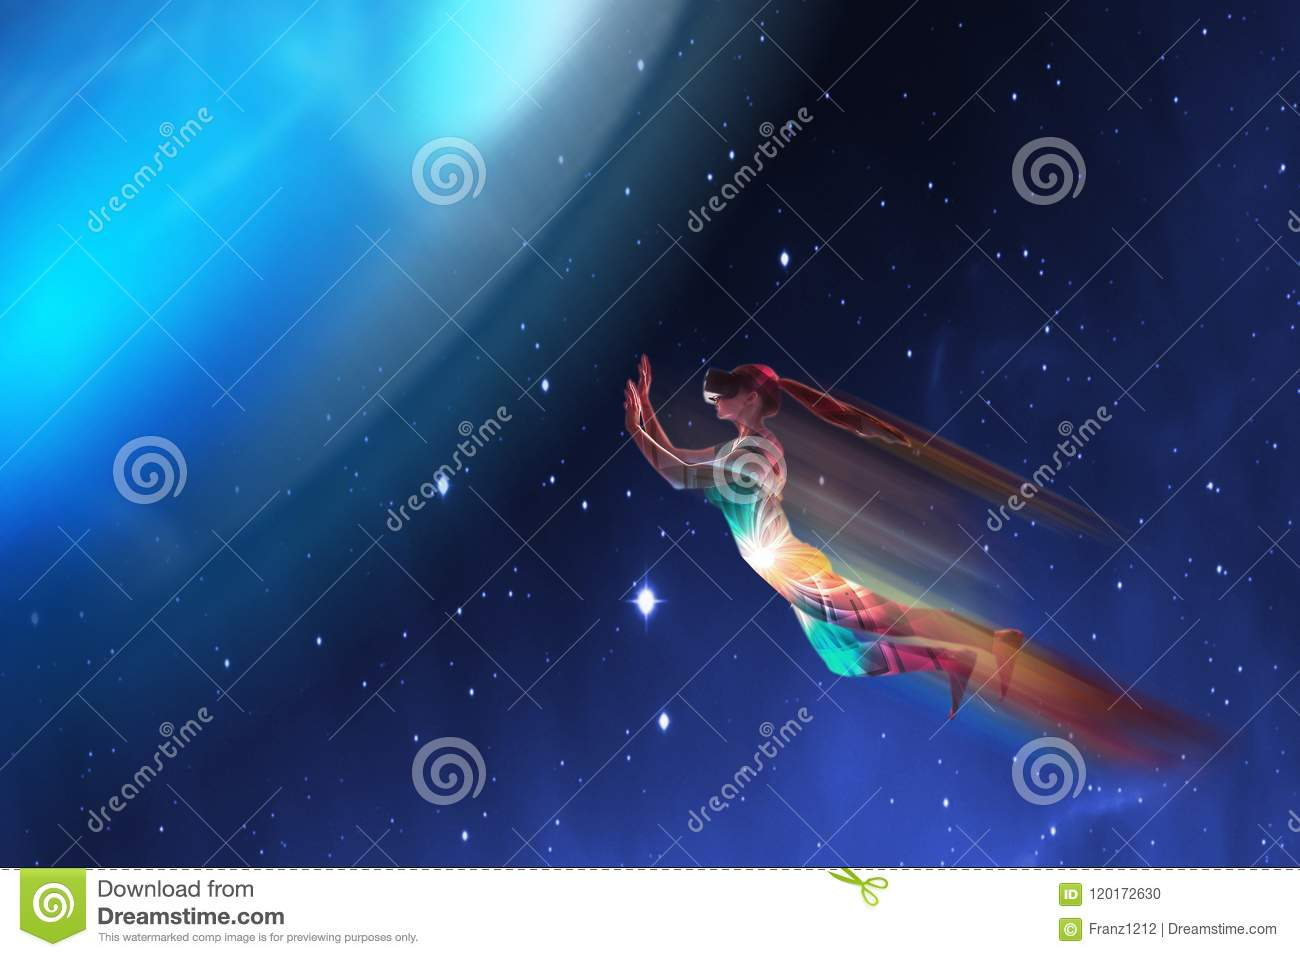 Download A Girl In Virtual Reality Glasses Dreams That She Is Flying. Concept Of Modern Technologies And Technologies Of The Stock Photo - Image of helmet, dream: 120172630